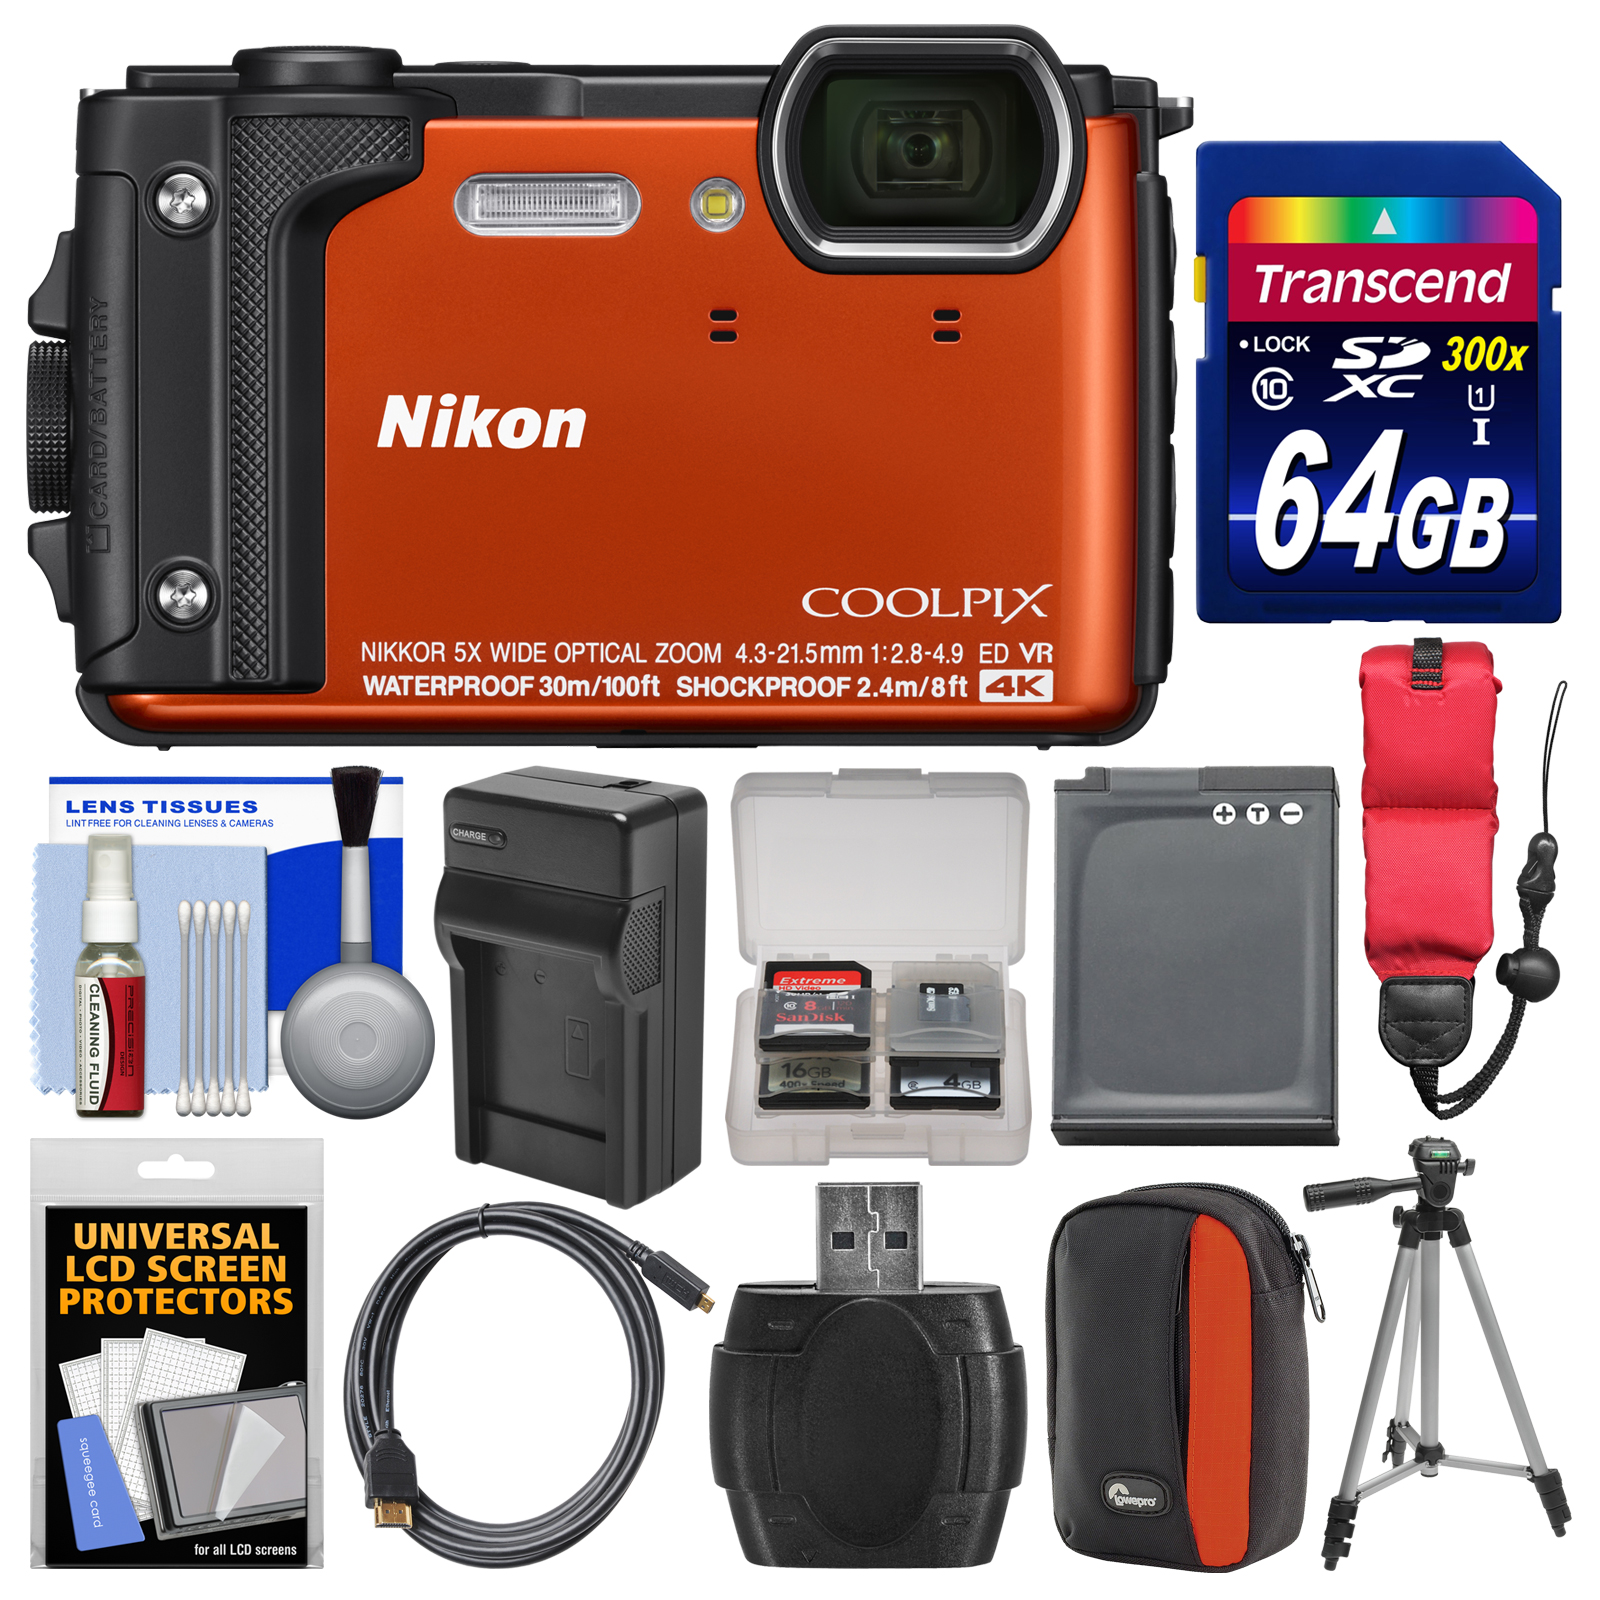 Nikon Coolpix W300 4K Wi-Fi Shock & Waterproof Digital Camera (Orange) with 64GB Card + Case + Battery & Charger + Tripod + Float Strap + Kit